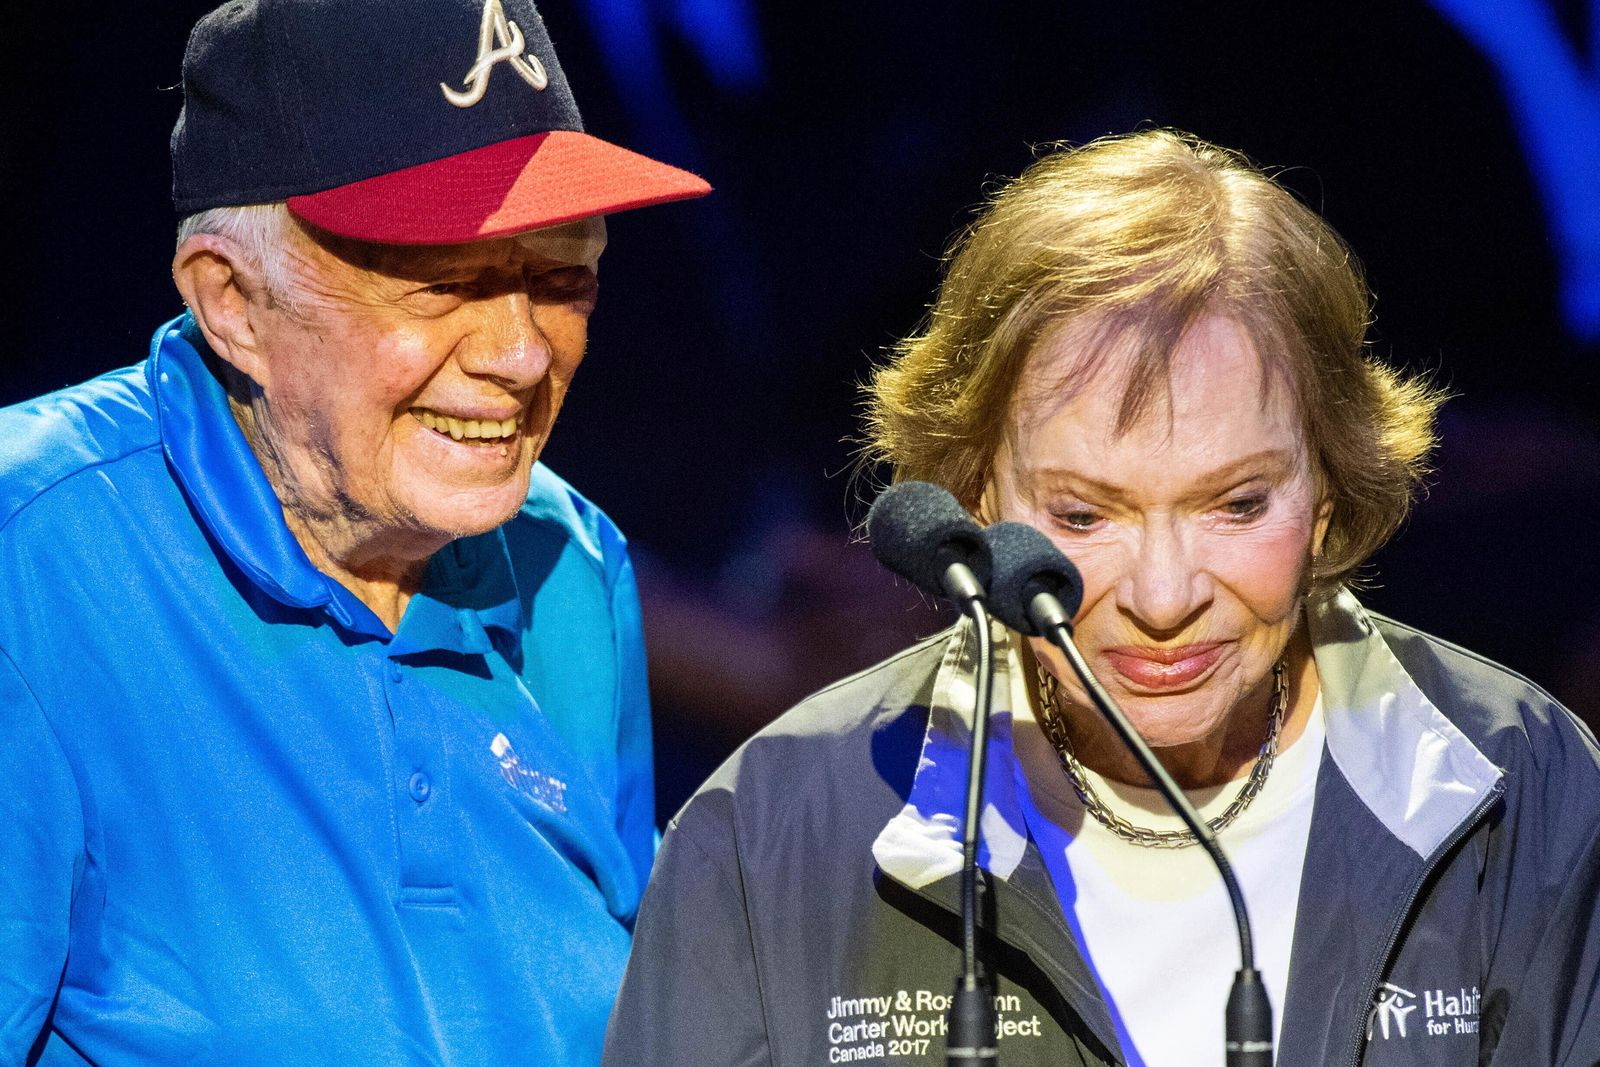 Former President Jimmy Carter and former first lady Rosalynn Carter speak during the Habitat for Humanity Jimmy and Rosalynn Carter Work Project opening ceremony at the Ryman Auditorium, Sunday, Oct. 6, 2019, in Nashville, Tenn. Carter had a black eye and stitches after falling at his Georgia home on Sunday, but made it to the evening program in Nashville. (Courtney Pedroza/The Tennessean via AP)